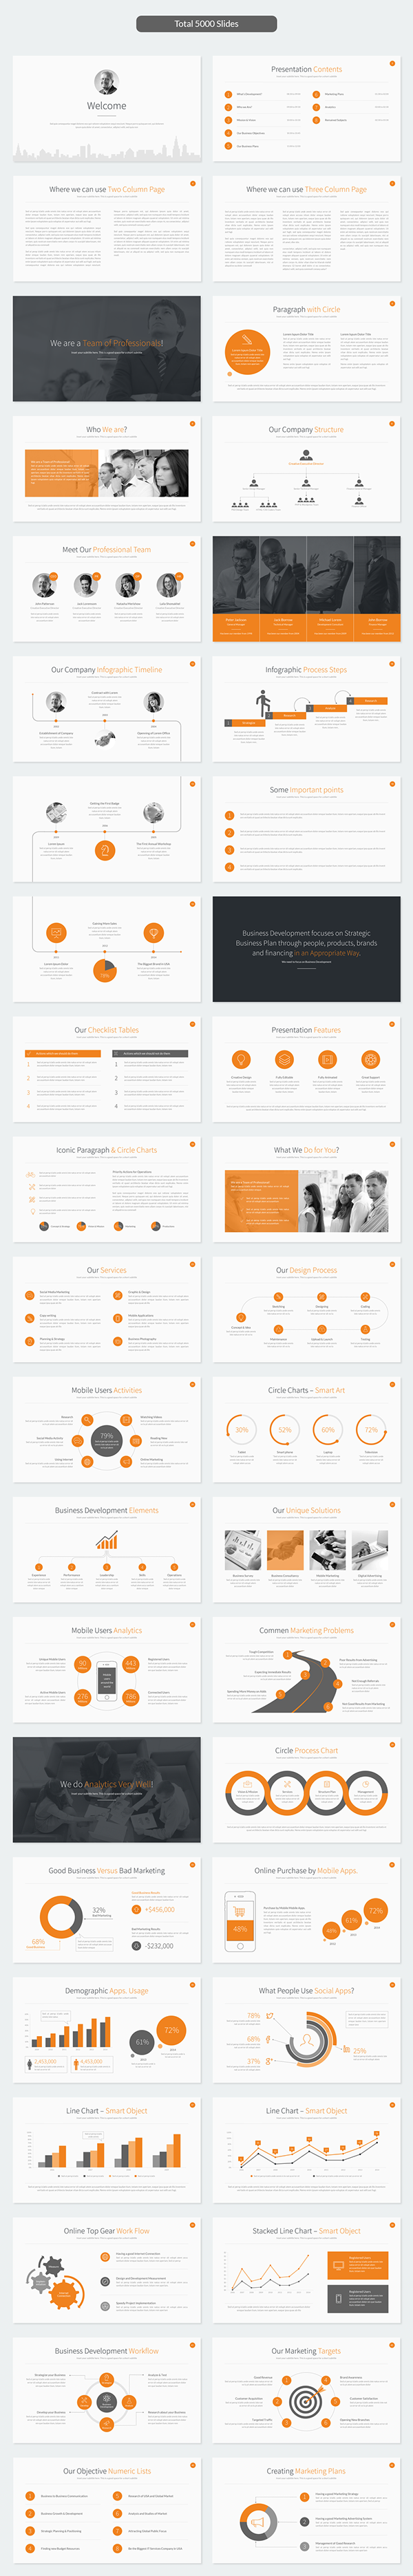 Business development powerpoint template on behance play video cheaphphosting Gallery